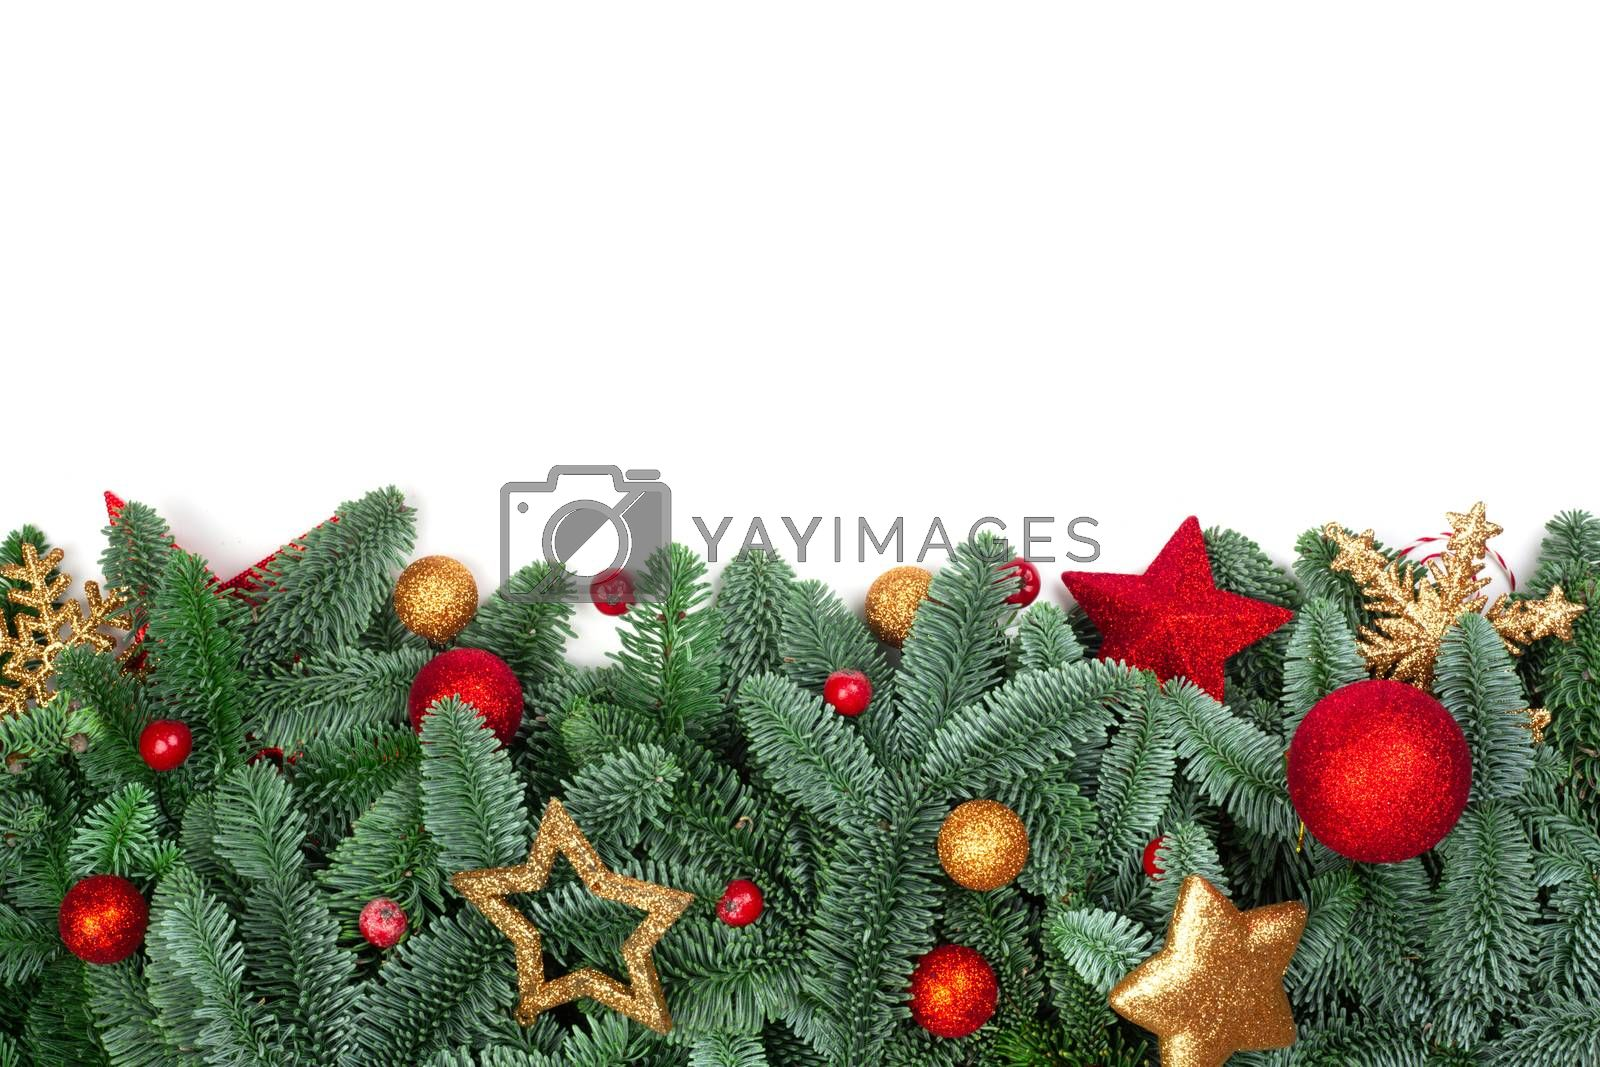 Royalty free image of Christmas tree and decor by destillat